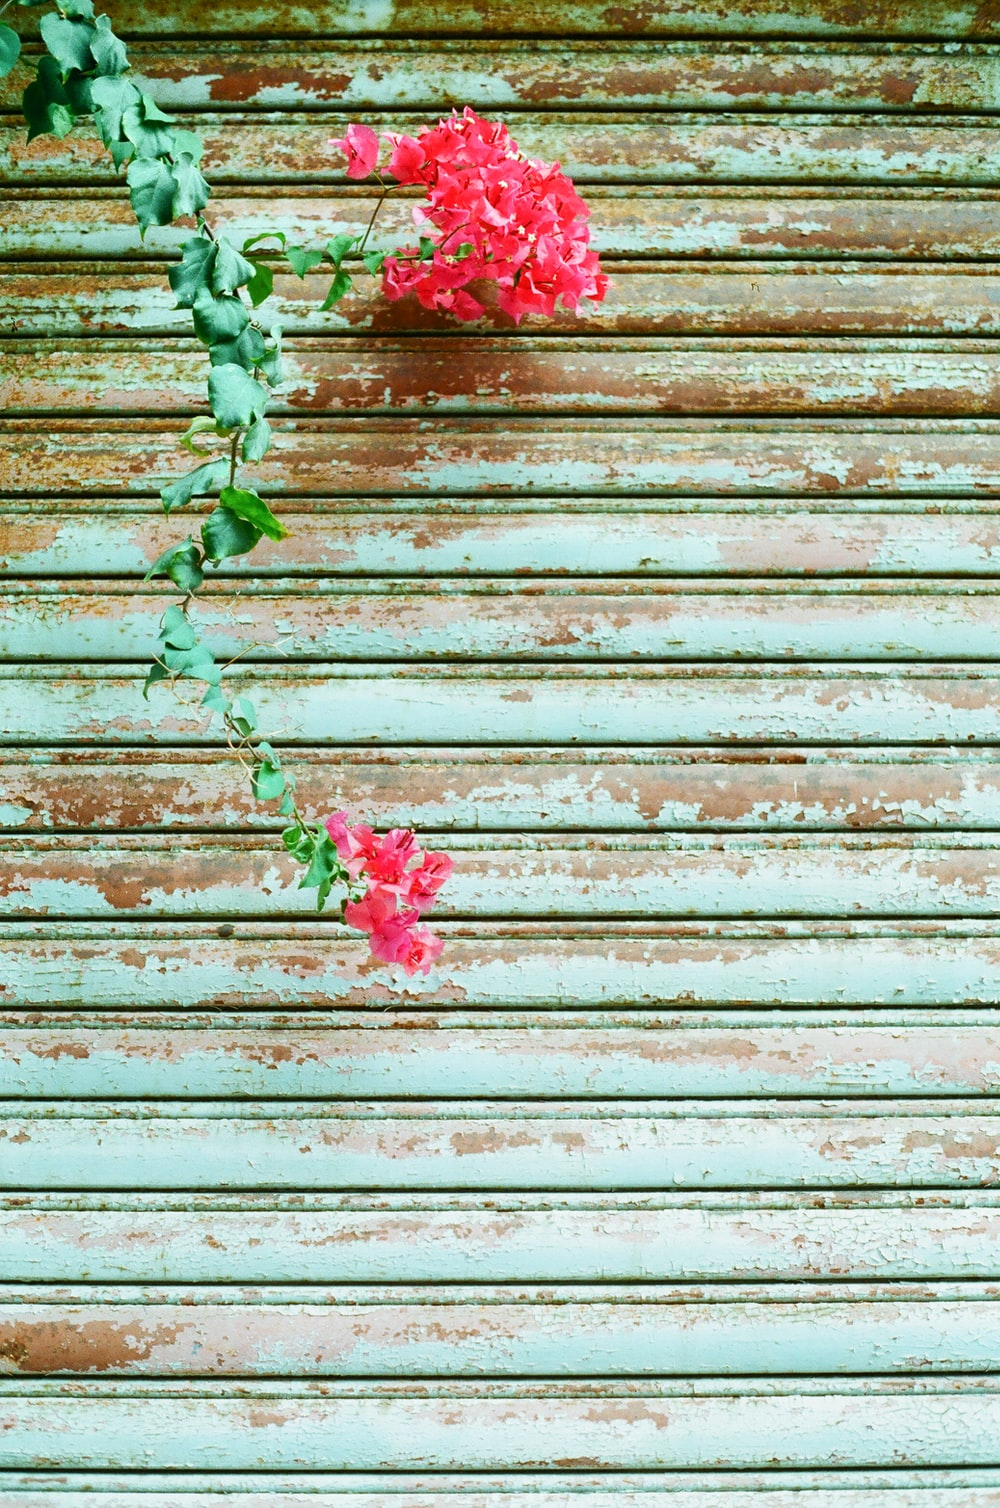 red and green plant on brown wooden surface